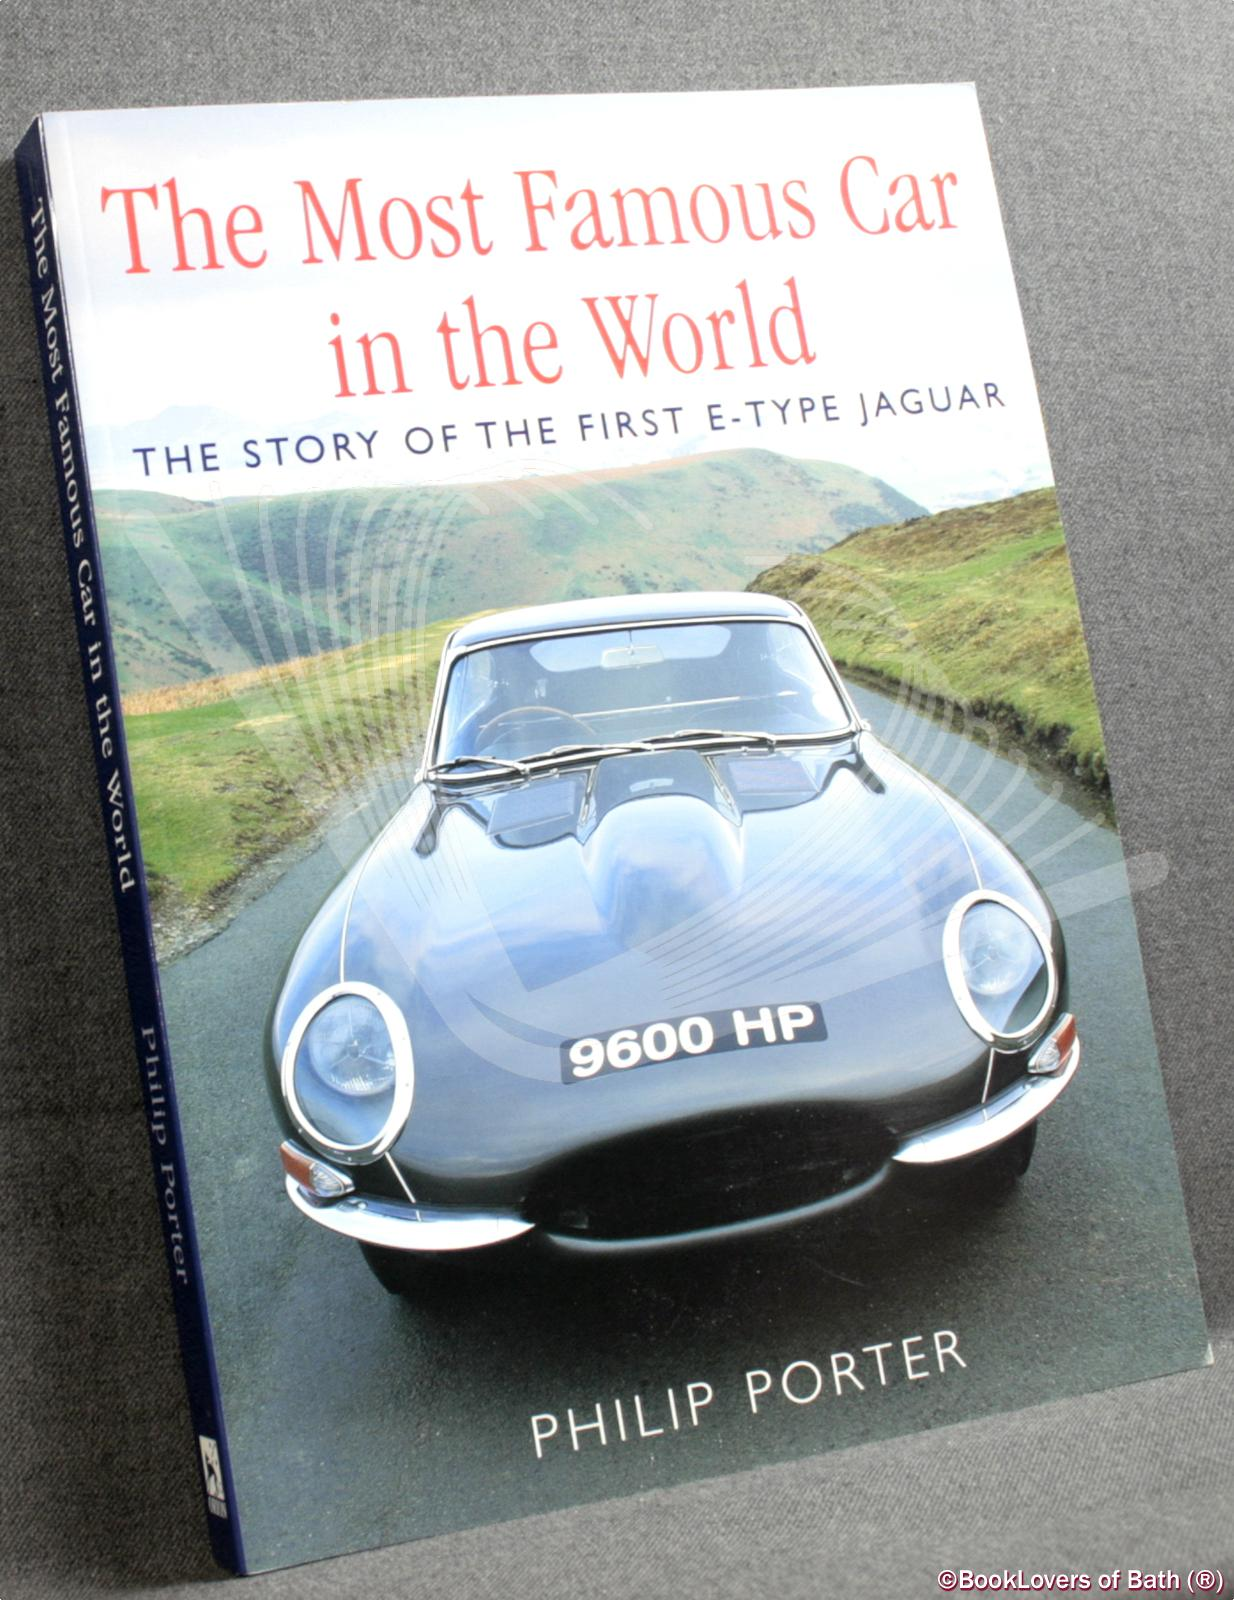 The Most Famous Car in the World: The Story of the First E-type Jaguar - Philip Porter